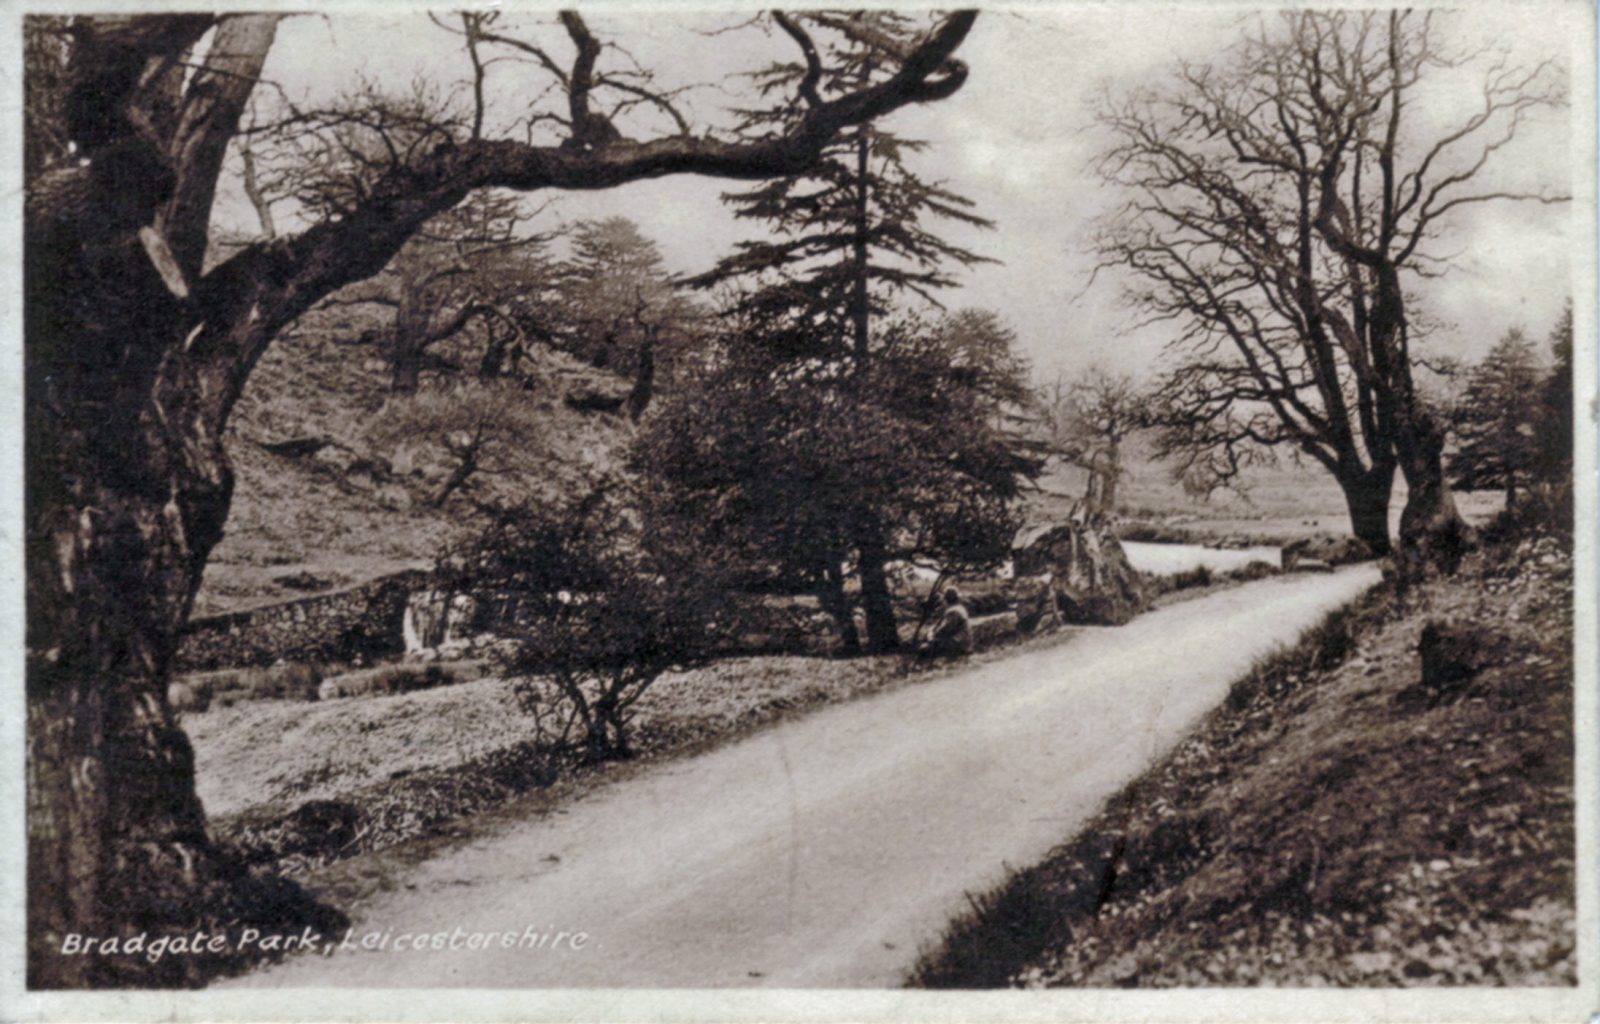 Bradgate Park, Leicester. Undated: The river and main path from Newtown Linford entrance. (File:1120)